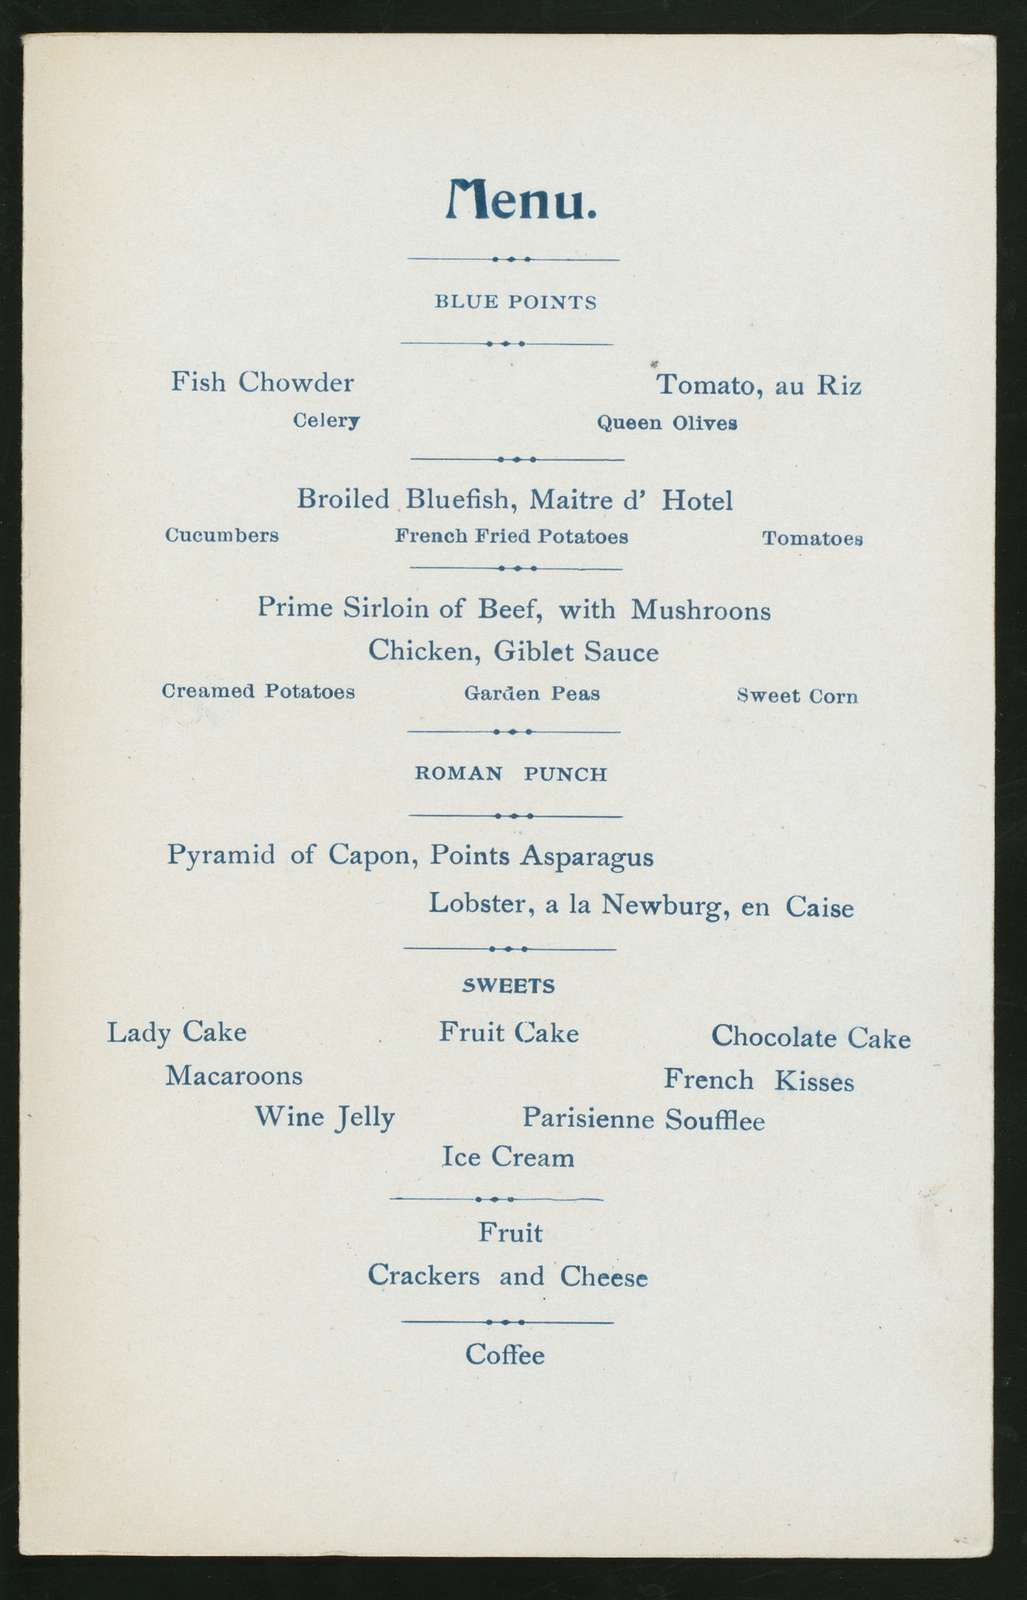 """DINNER TO THE AGENTS OF THE FRANK JONES BREWING CO. [held by] (FRANK JONES BREWING CO.) [at] """"WENTWORTH,THE,PORTSMOUTH,NH"""" (HOTEL;)"""